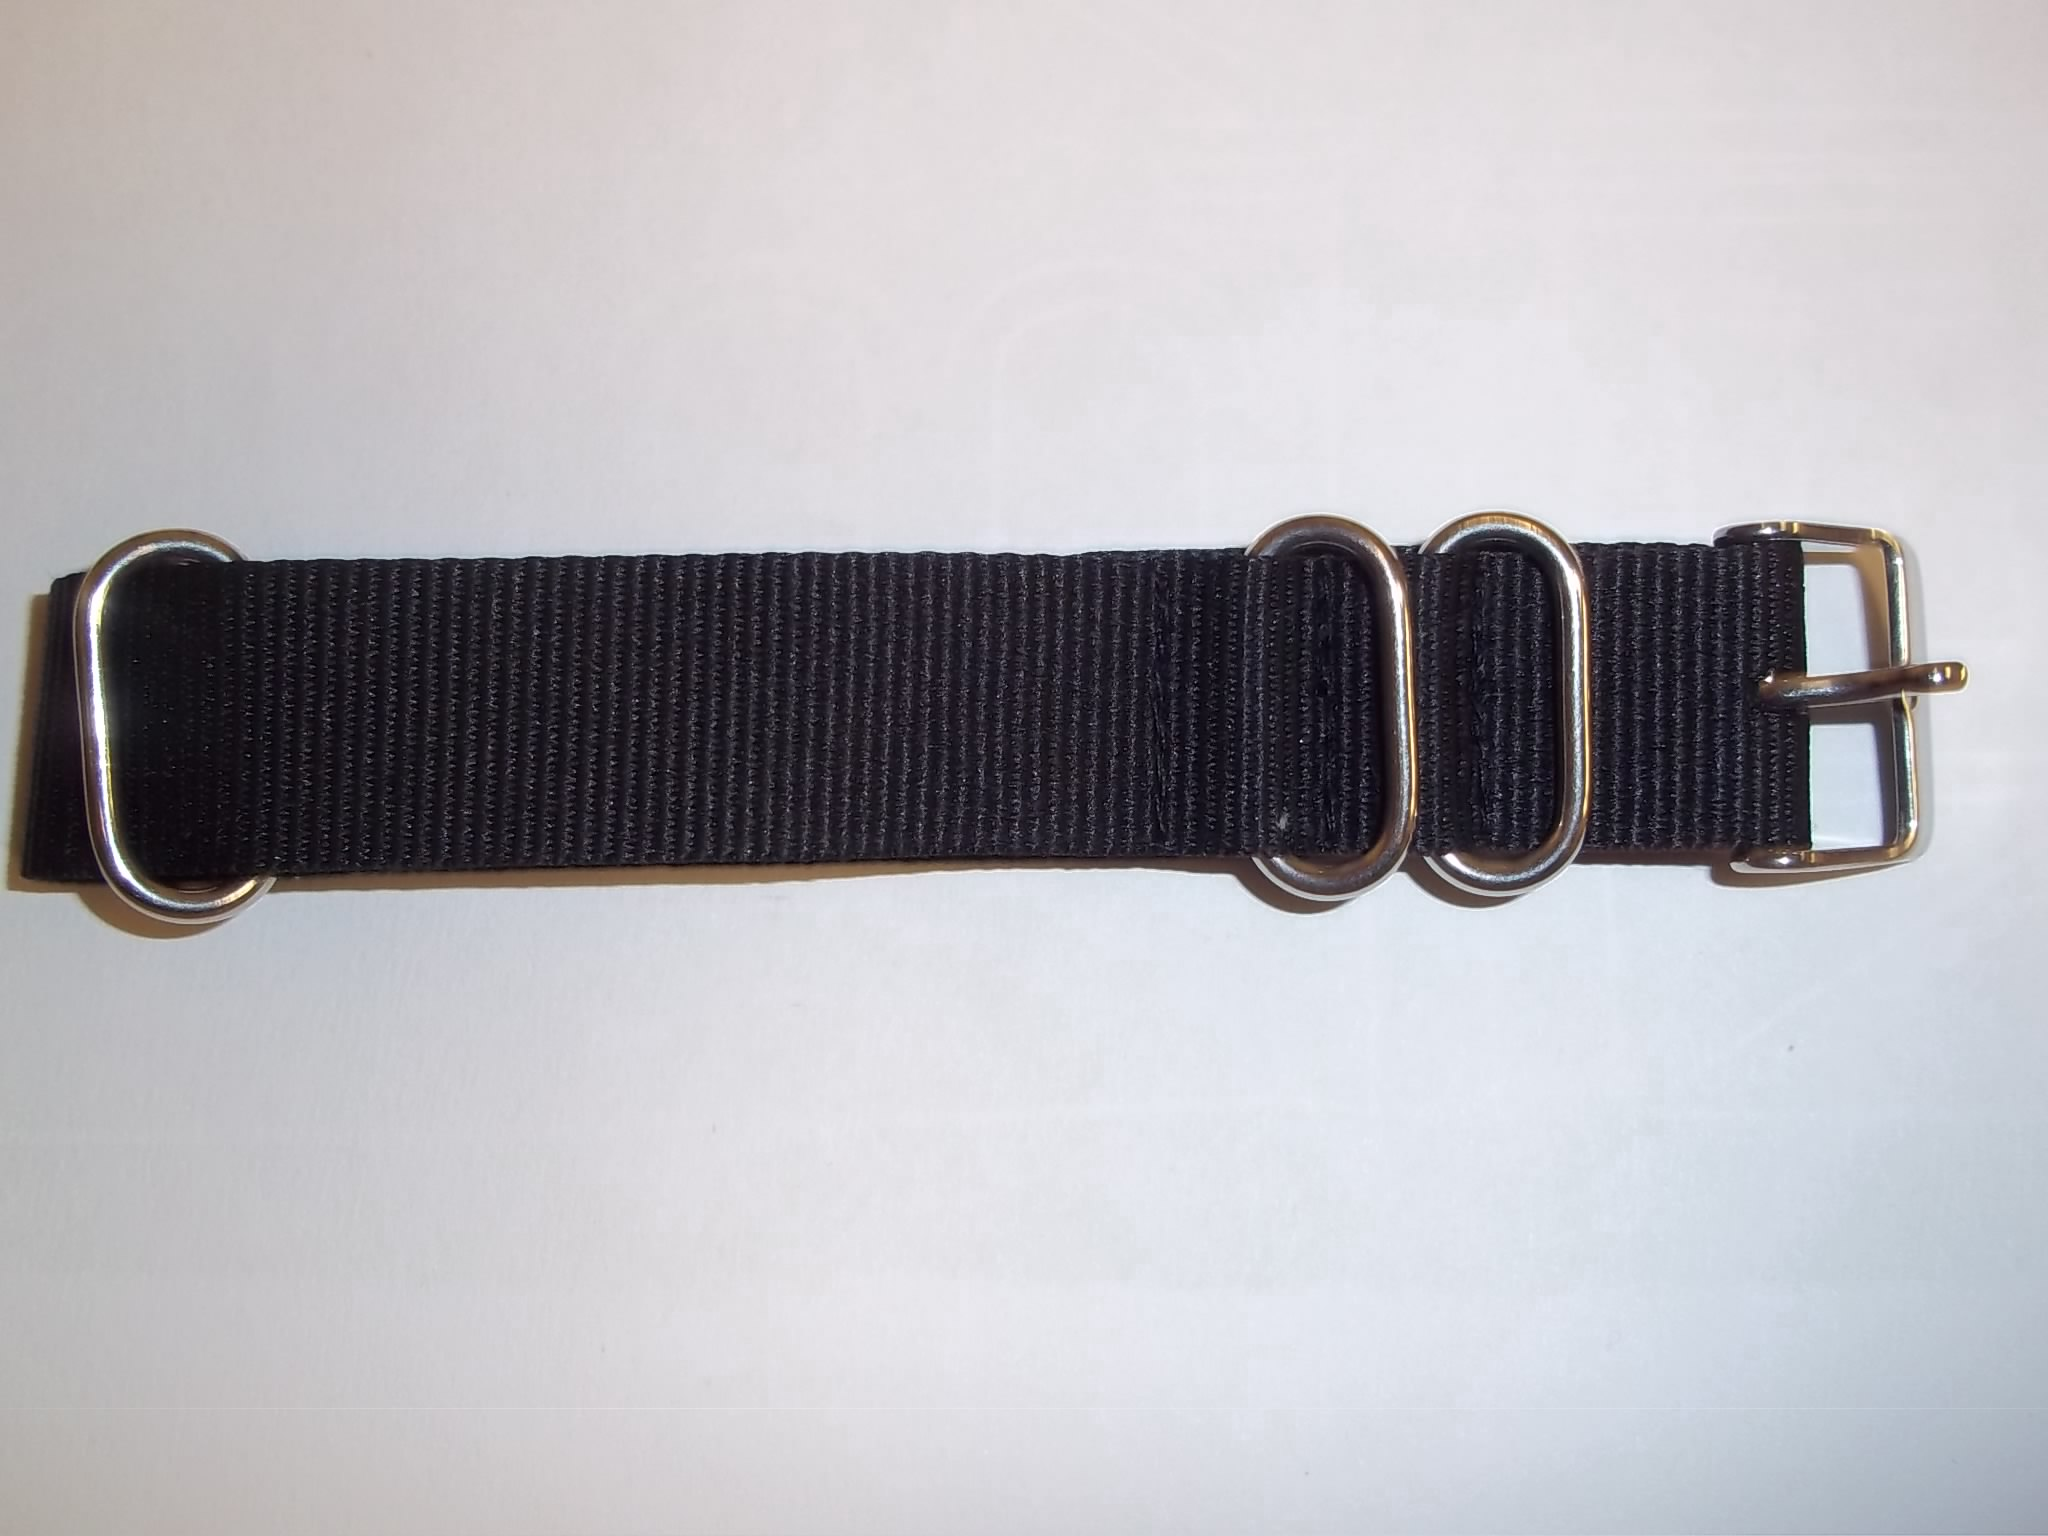 K3640BK New! Nato Military Mens's Black Nylon Watch Band 20mm